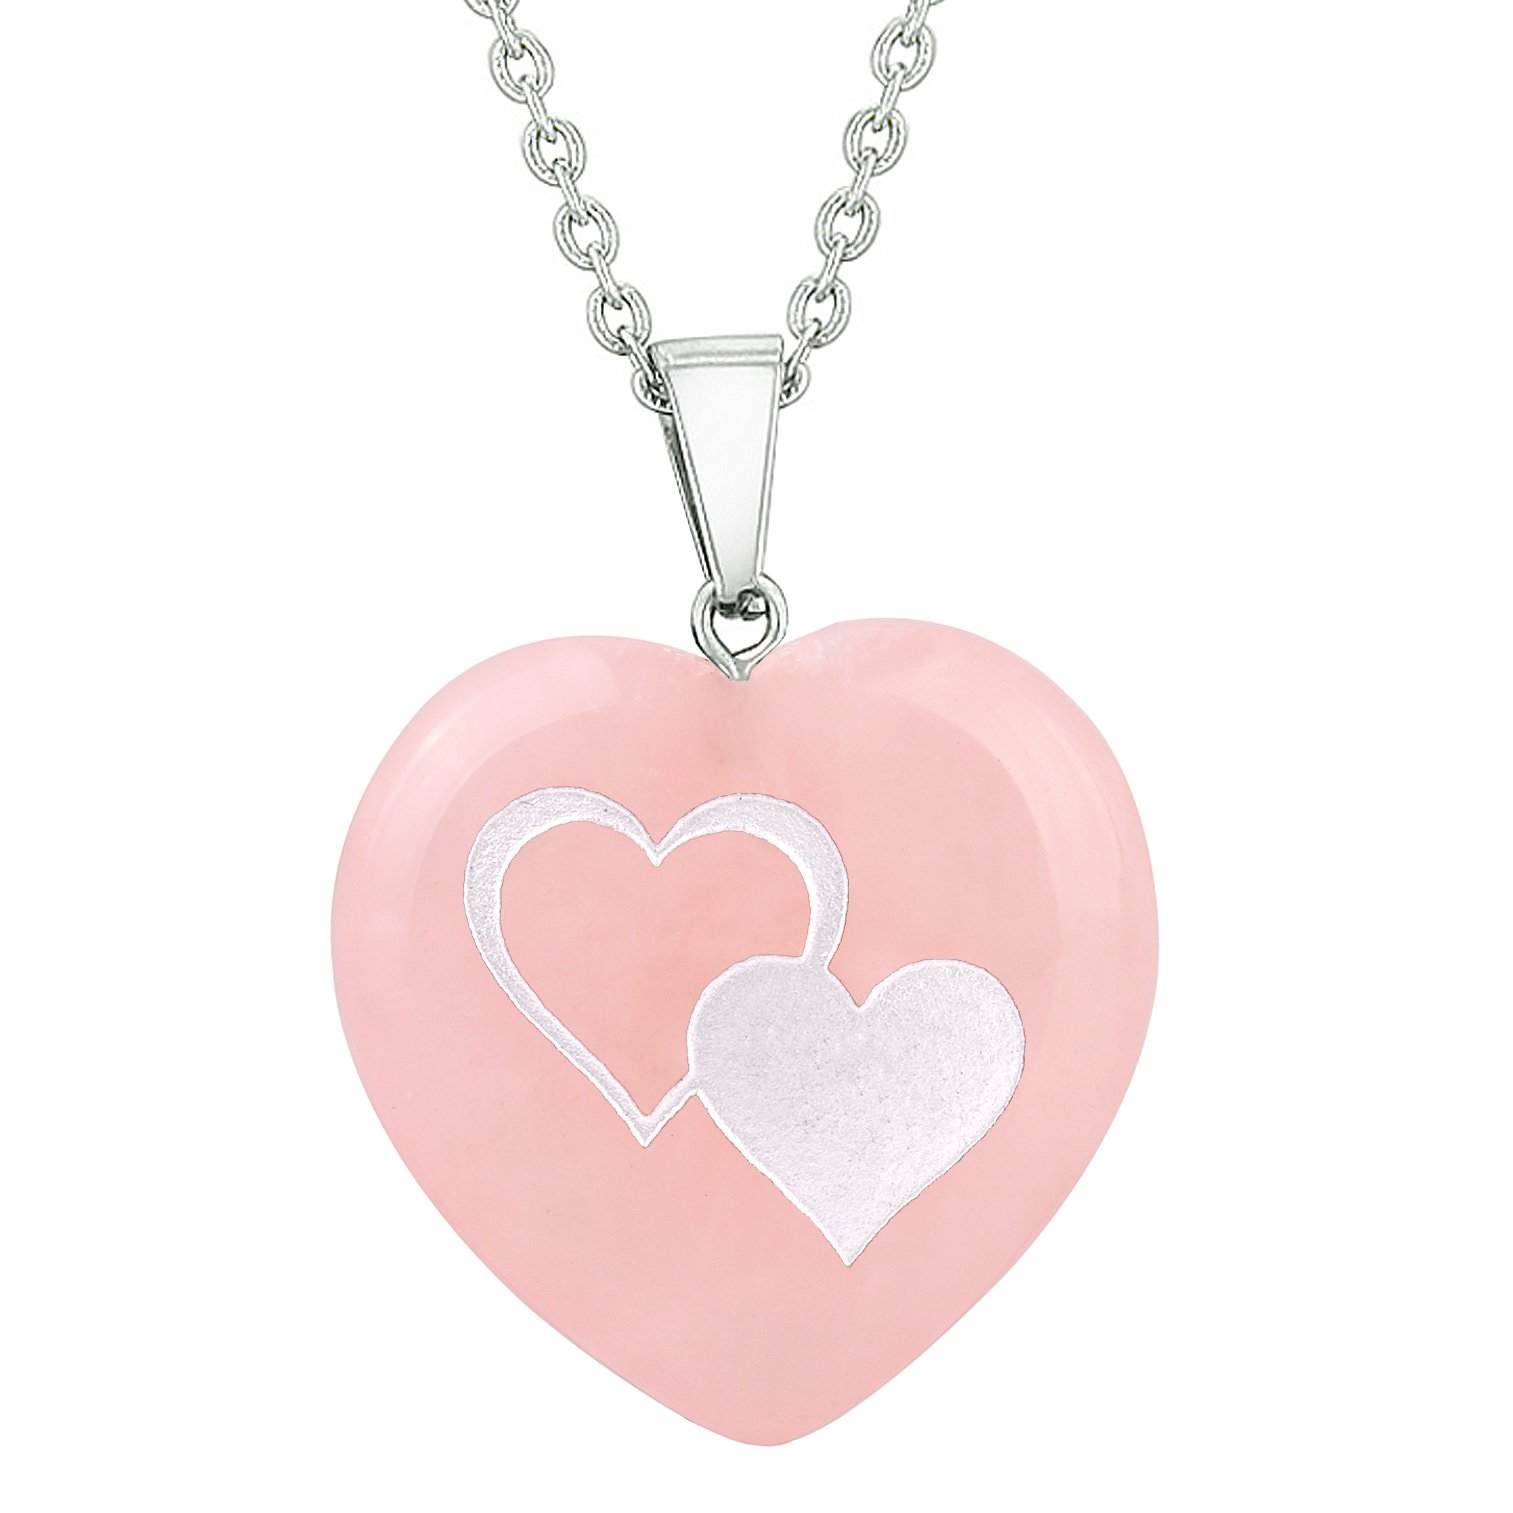 Amulet United Hearts Love Powers Protection Energy Rose Quartz Puffy Heart Pendant Necklace